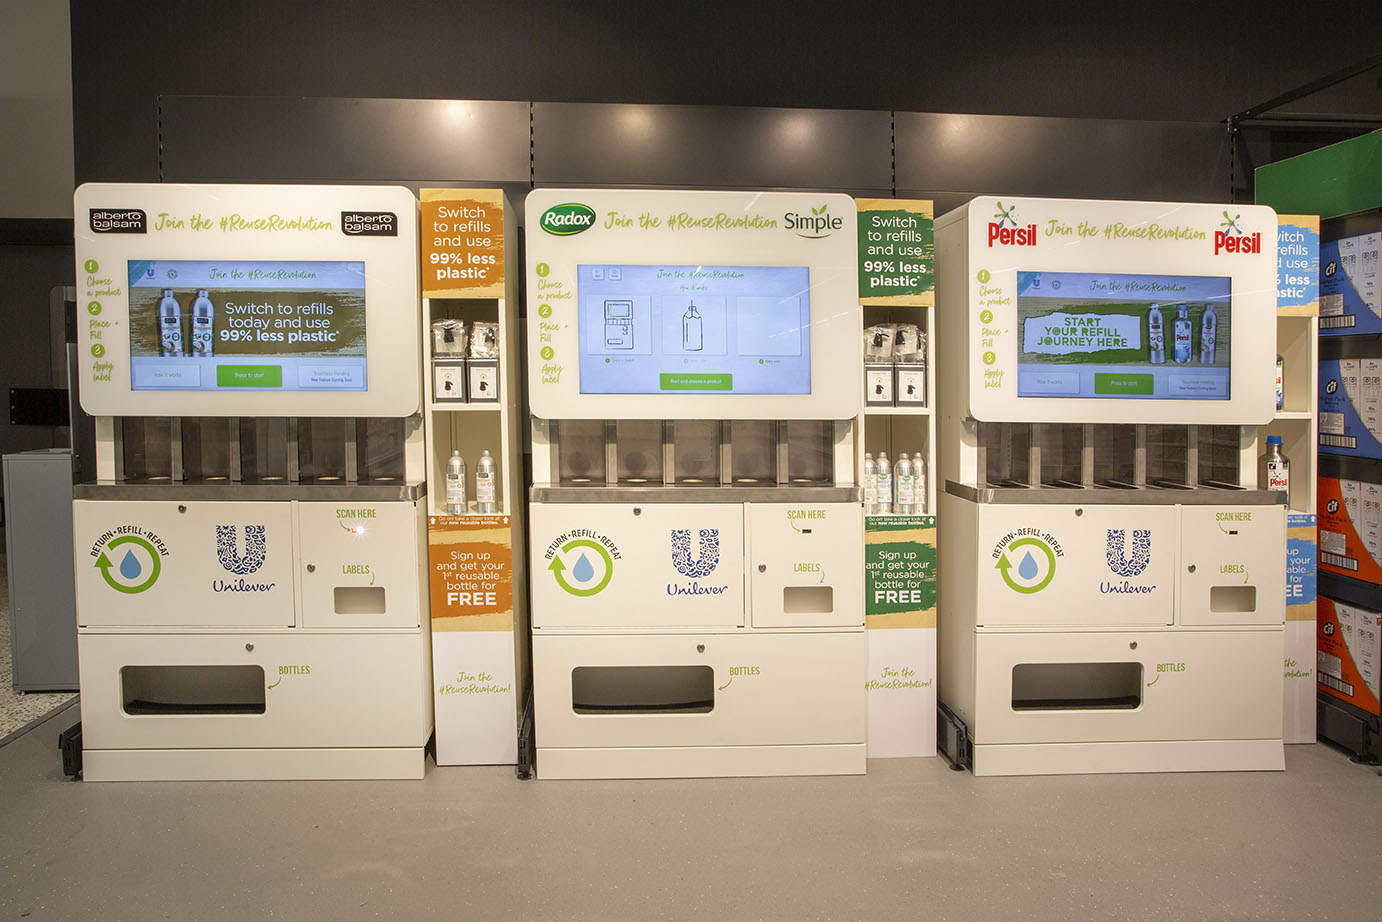 Some of the new refill stations at Asda's Middleton branch